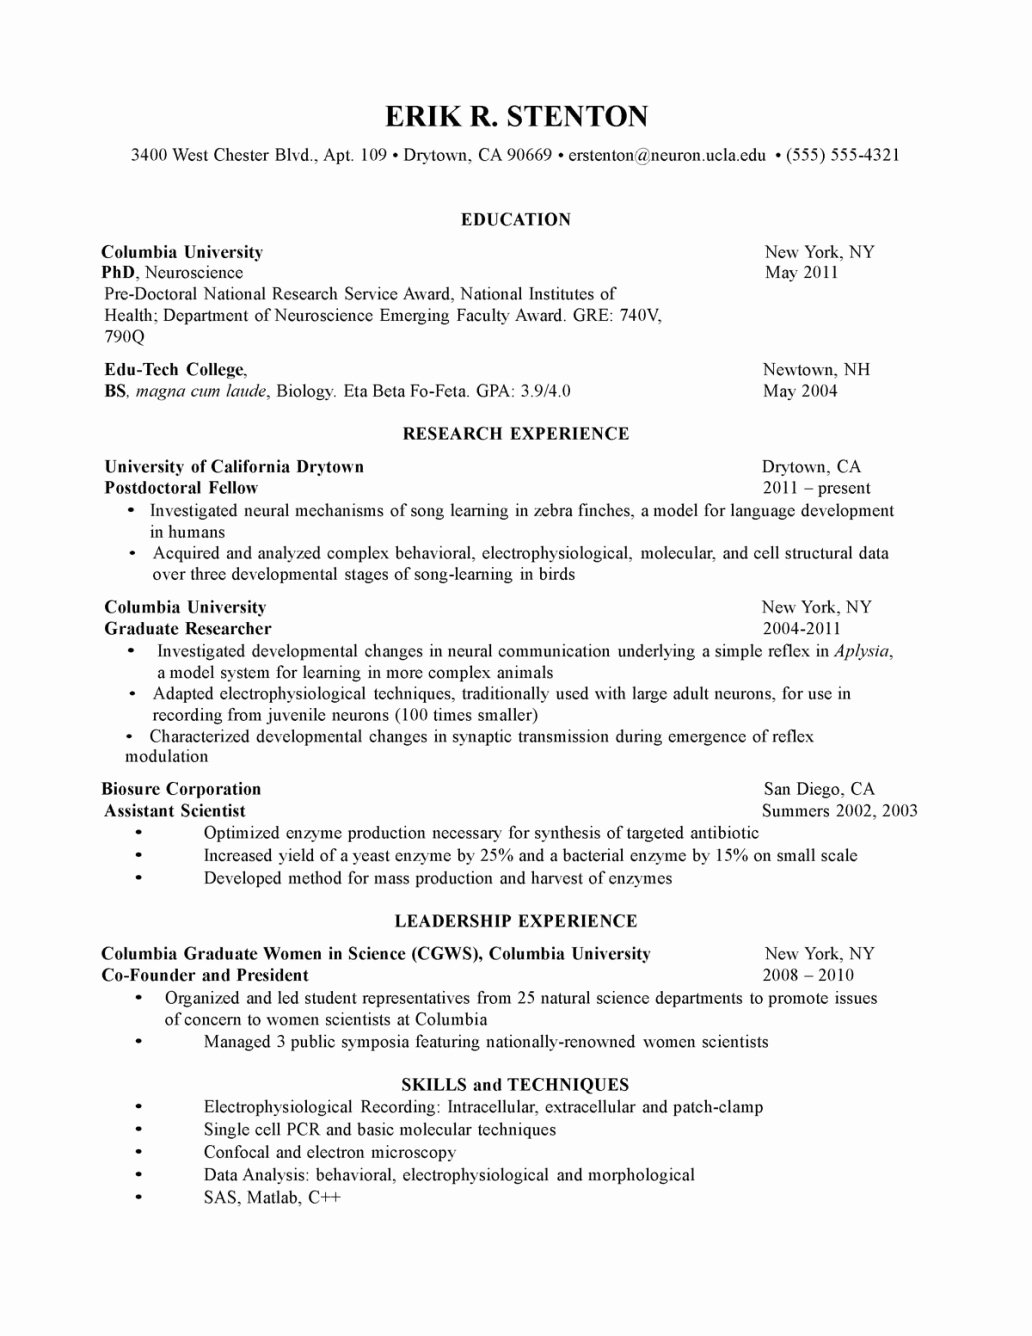 Latex Academic Cv Template Unique Latex Cv Template Academic Phd Resume Templates Kordur